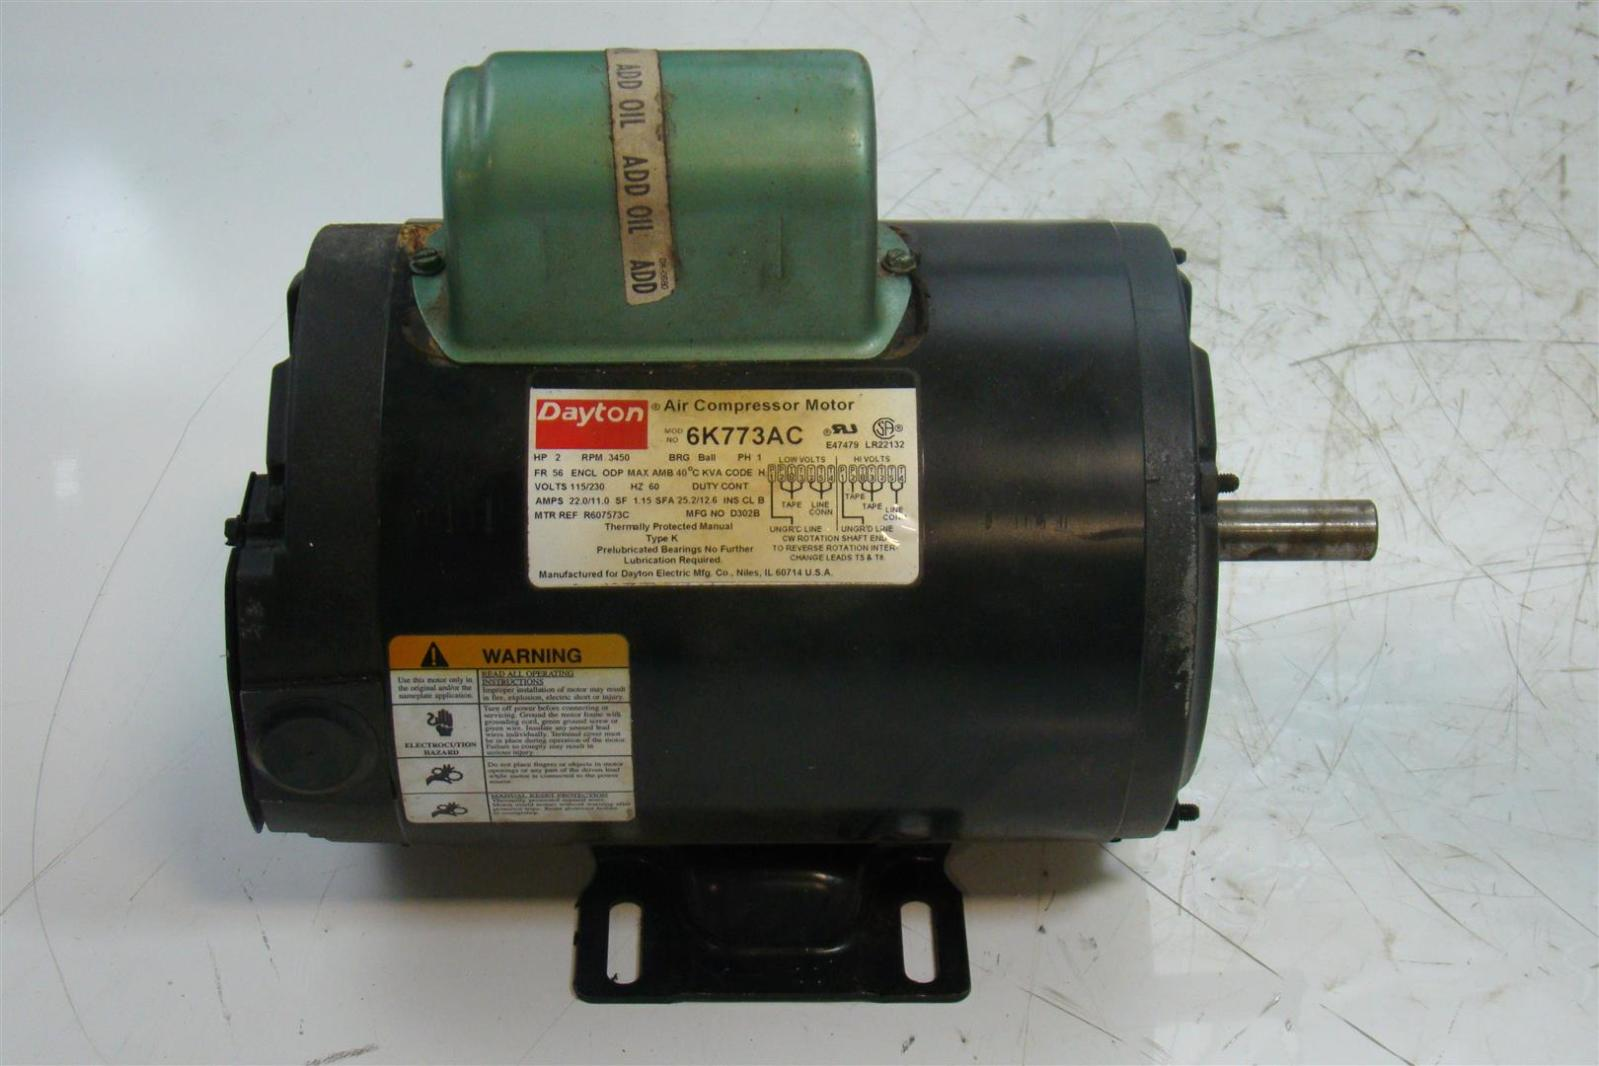 Dayton electric motor 2hp single phase 115 230v 3450rpm for Dayton electric motors customer service